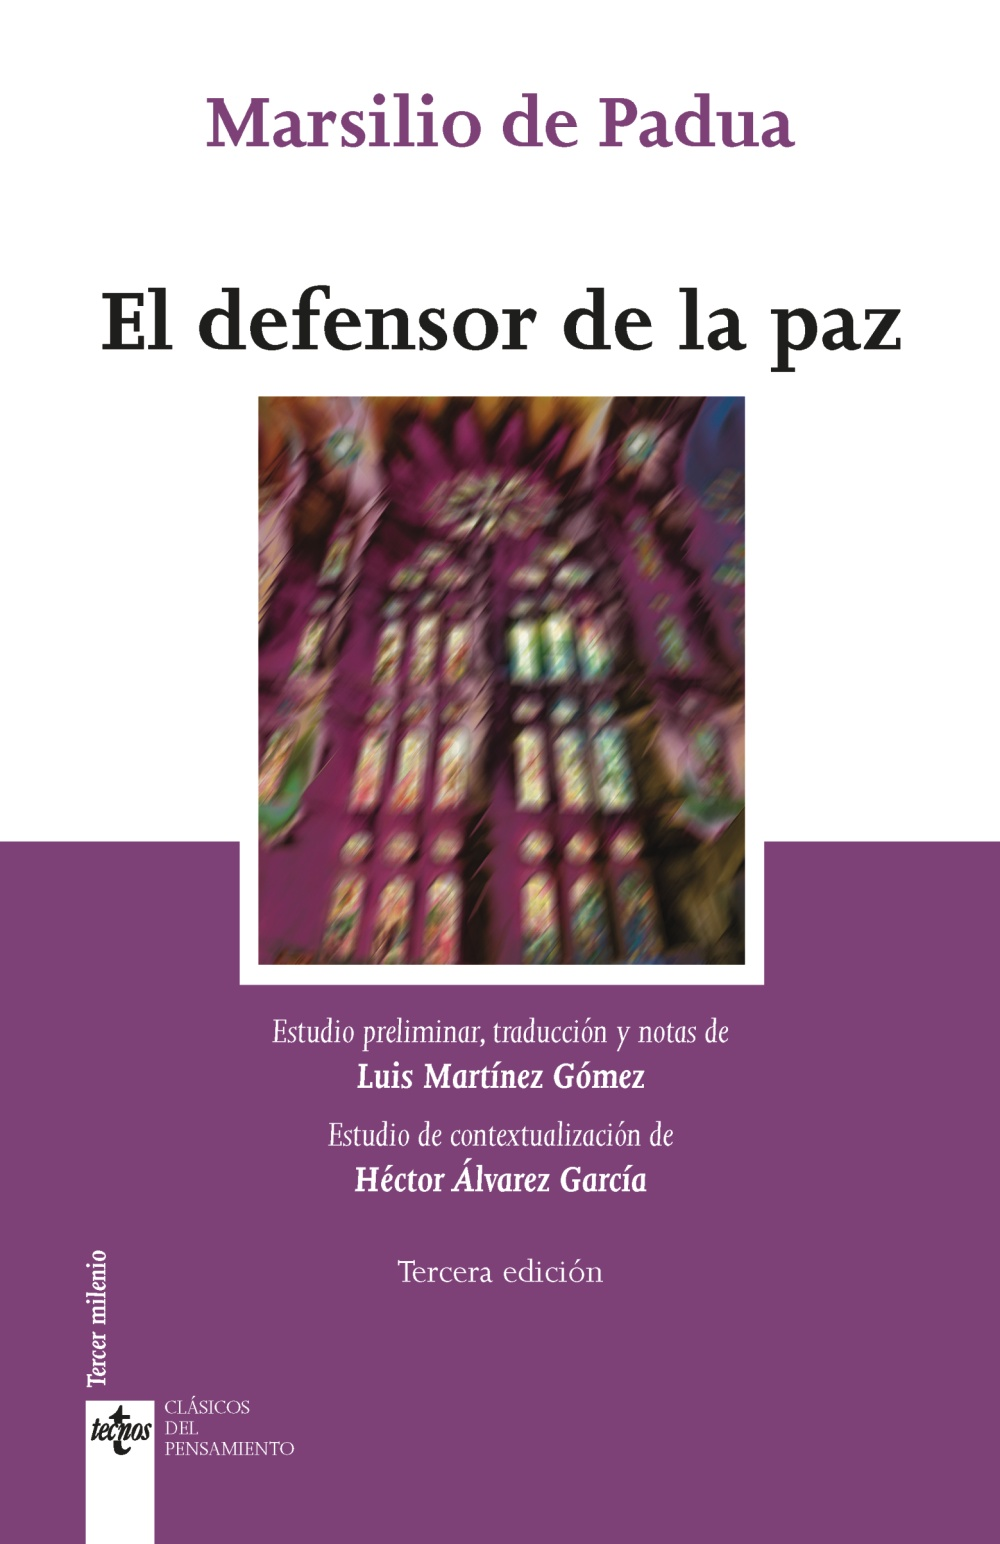 El defensor de la paz. 9788430981588